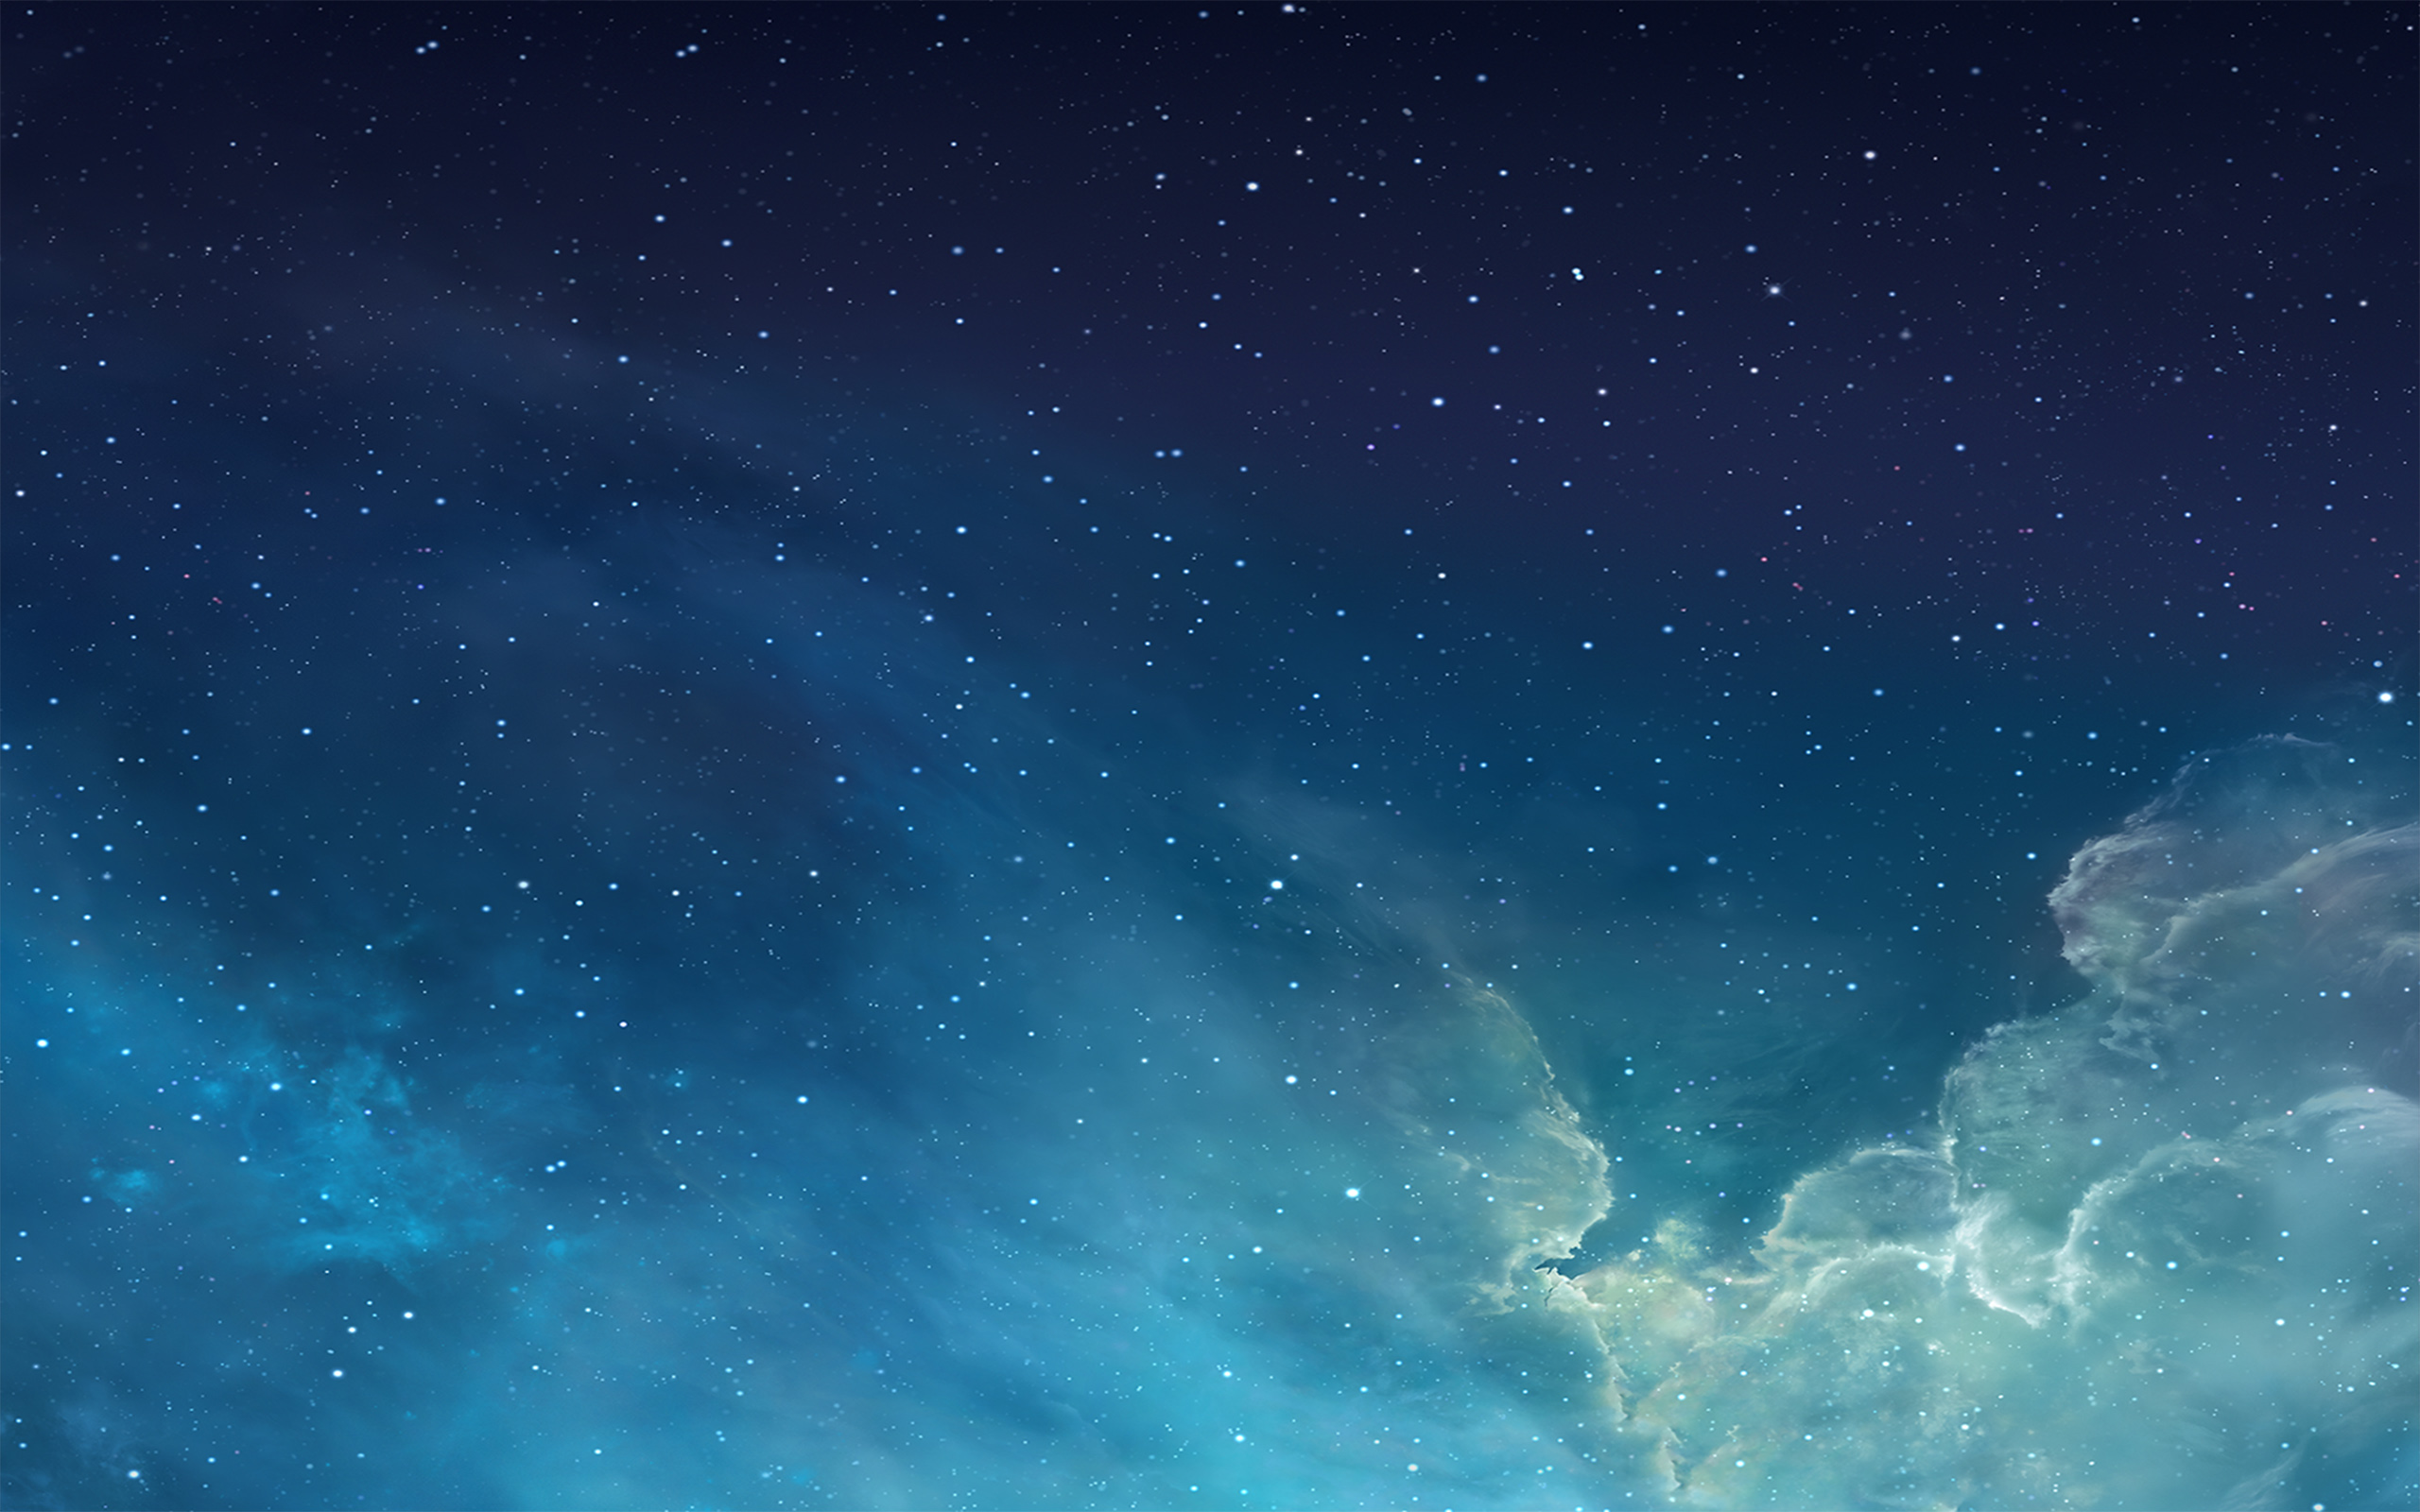 Lovely IOS7 Wallpaper